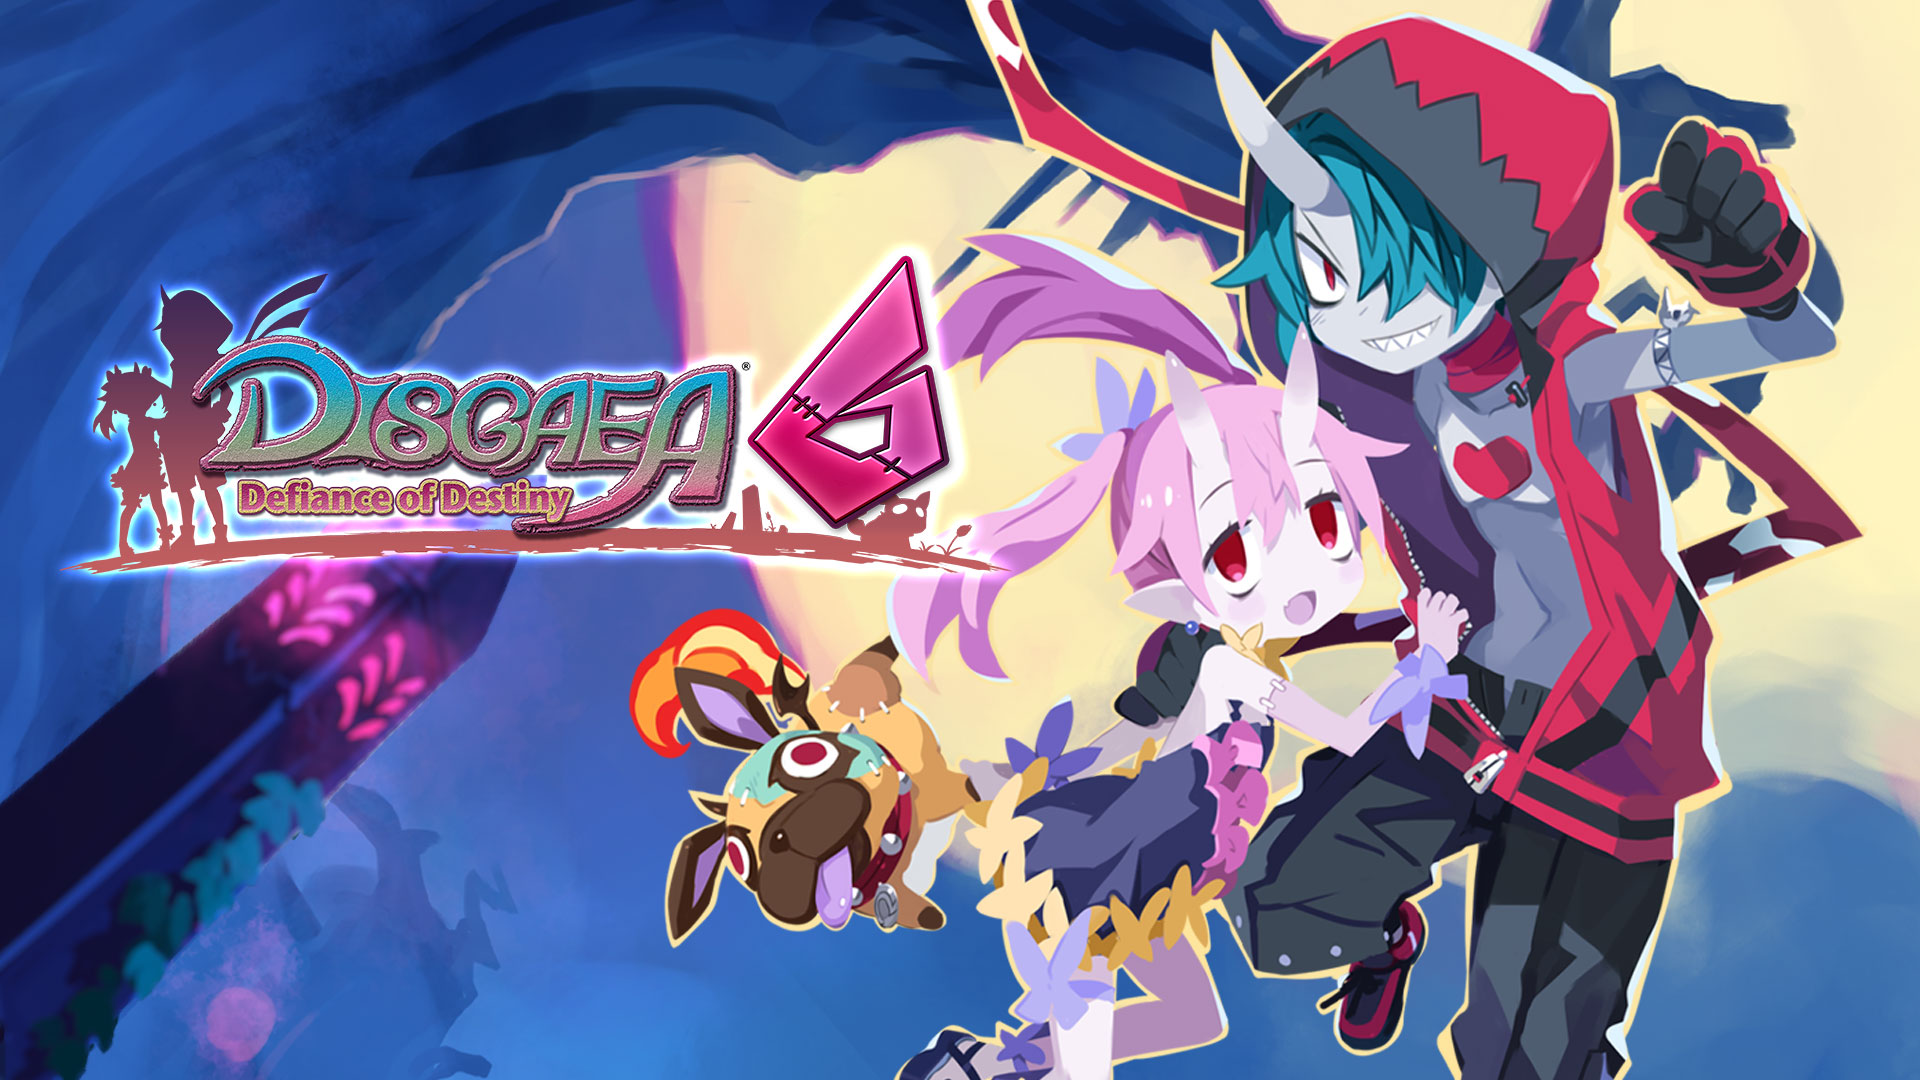 Disgaea 6 Defiance of Destiny stats and facts